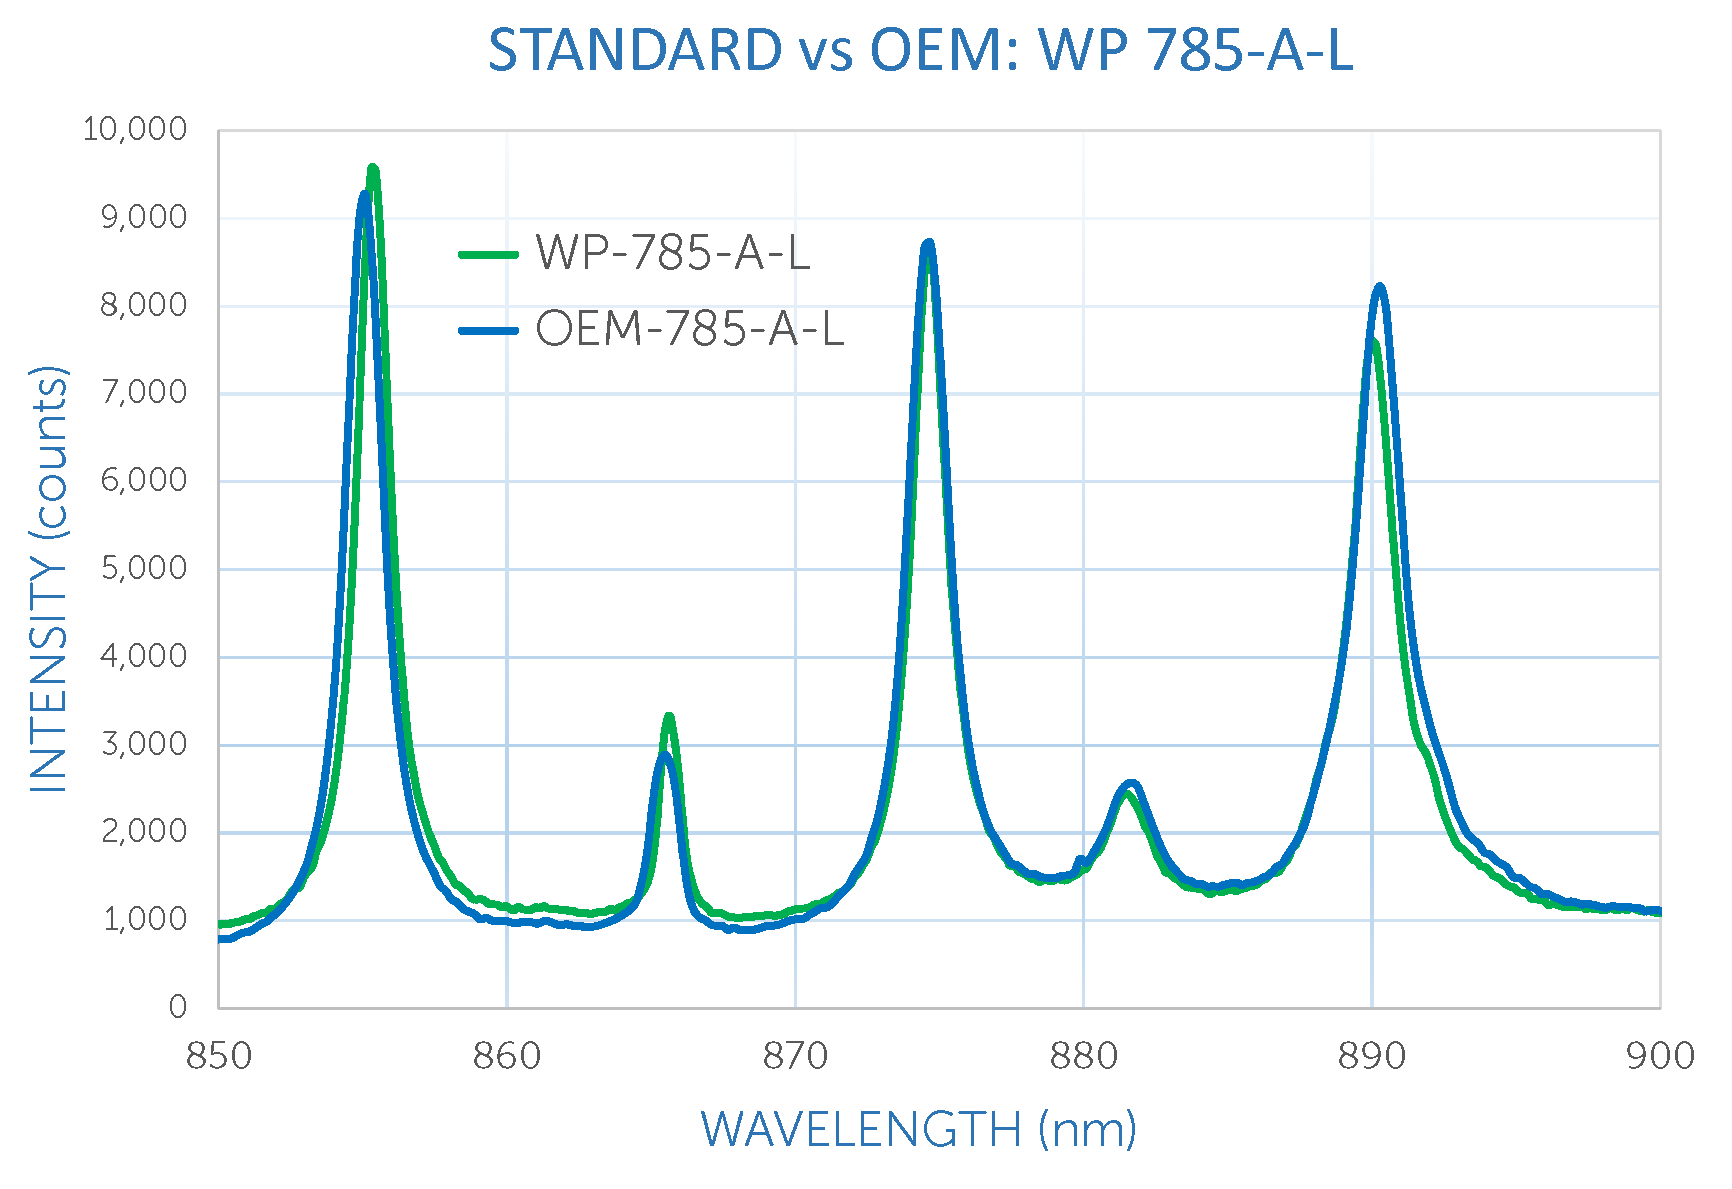 Standard WP 785-A-L vs the OEM module equivalent